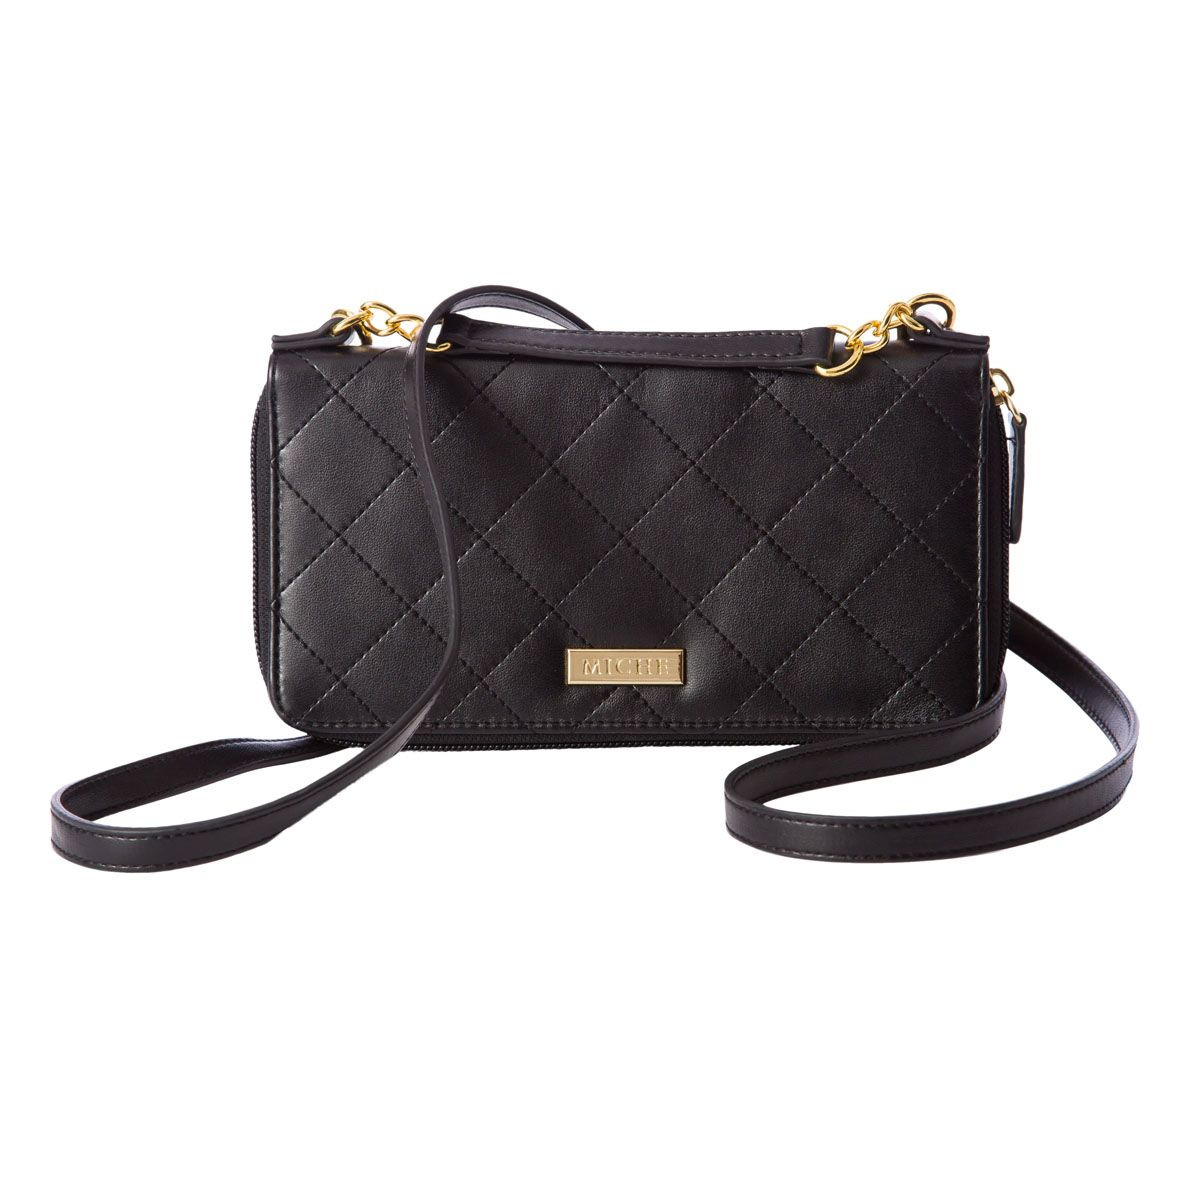 """*Miche Canada* Convertible Wallet (Black): All convertible wallets can be worn cross-body with the strap or carried as a clutch when the strap is removed. Features black faux leather with diamond stitching, zipper closure and gold hardware. Interior is black faux leather. ID card and 11 credit card slots; one open pocket and interior zippered change pocket. Wallet dimensions: 8"""" long x 4 ¼"""" wide. Strap dimensions: 44 ½"""" long x ½"""" wide. Strap drop: 22 ½""""."""